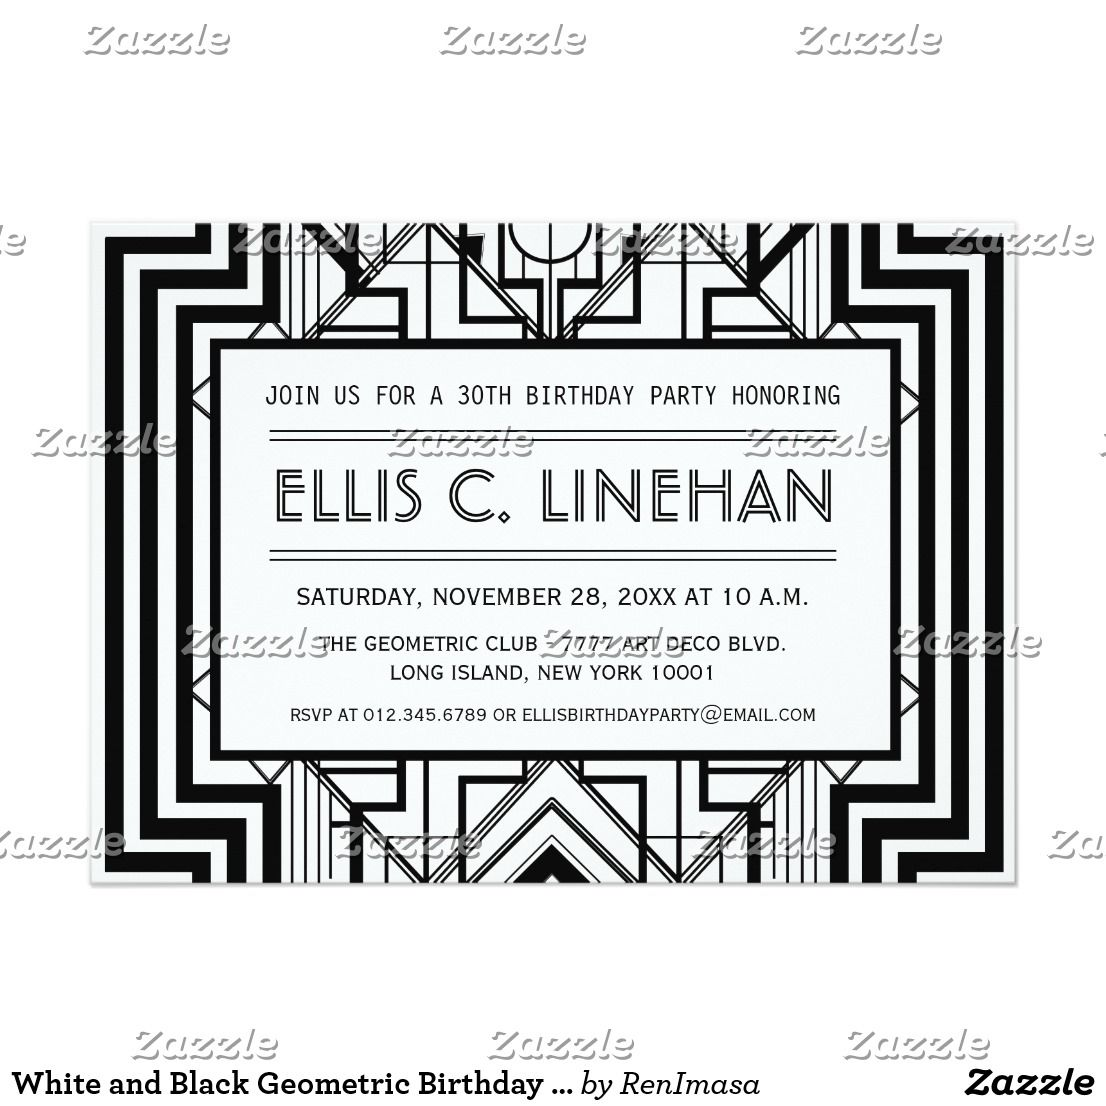 All White Birthday Party Invitations office holiday card message